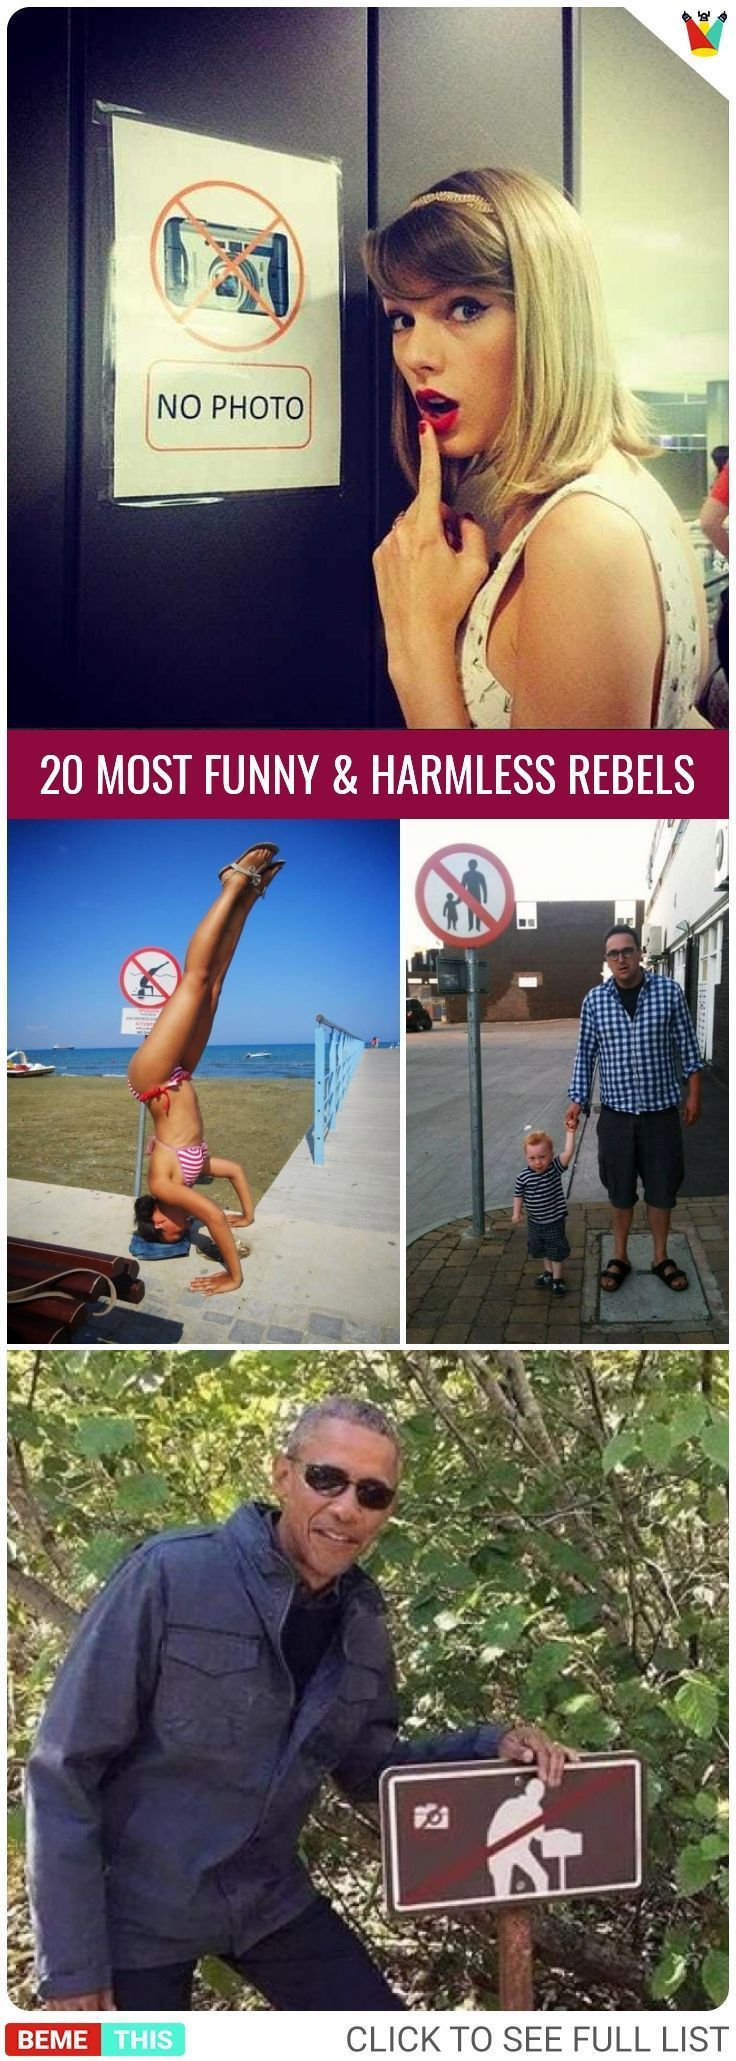 20 Rebels Who are Breaking the Rules in Hilarious Ways